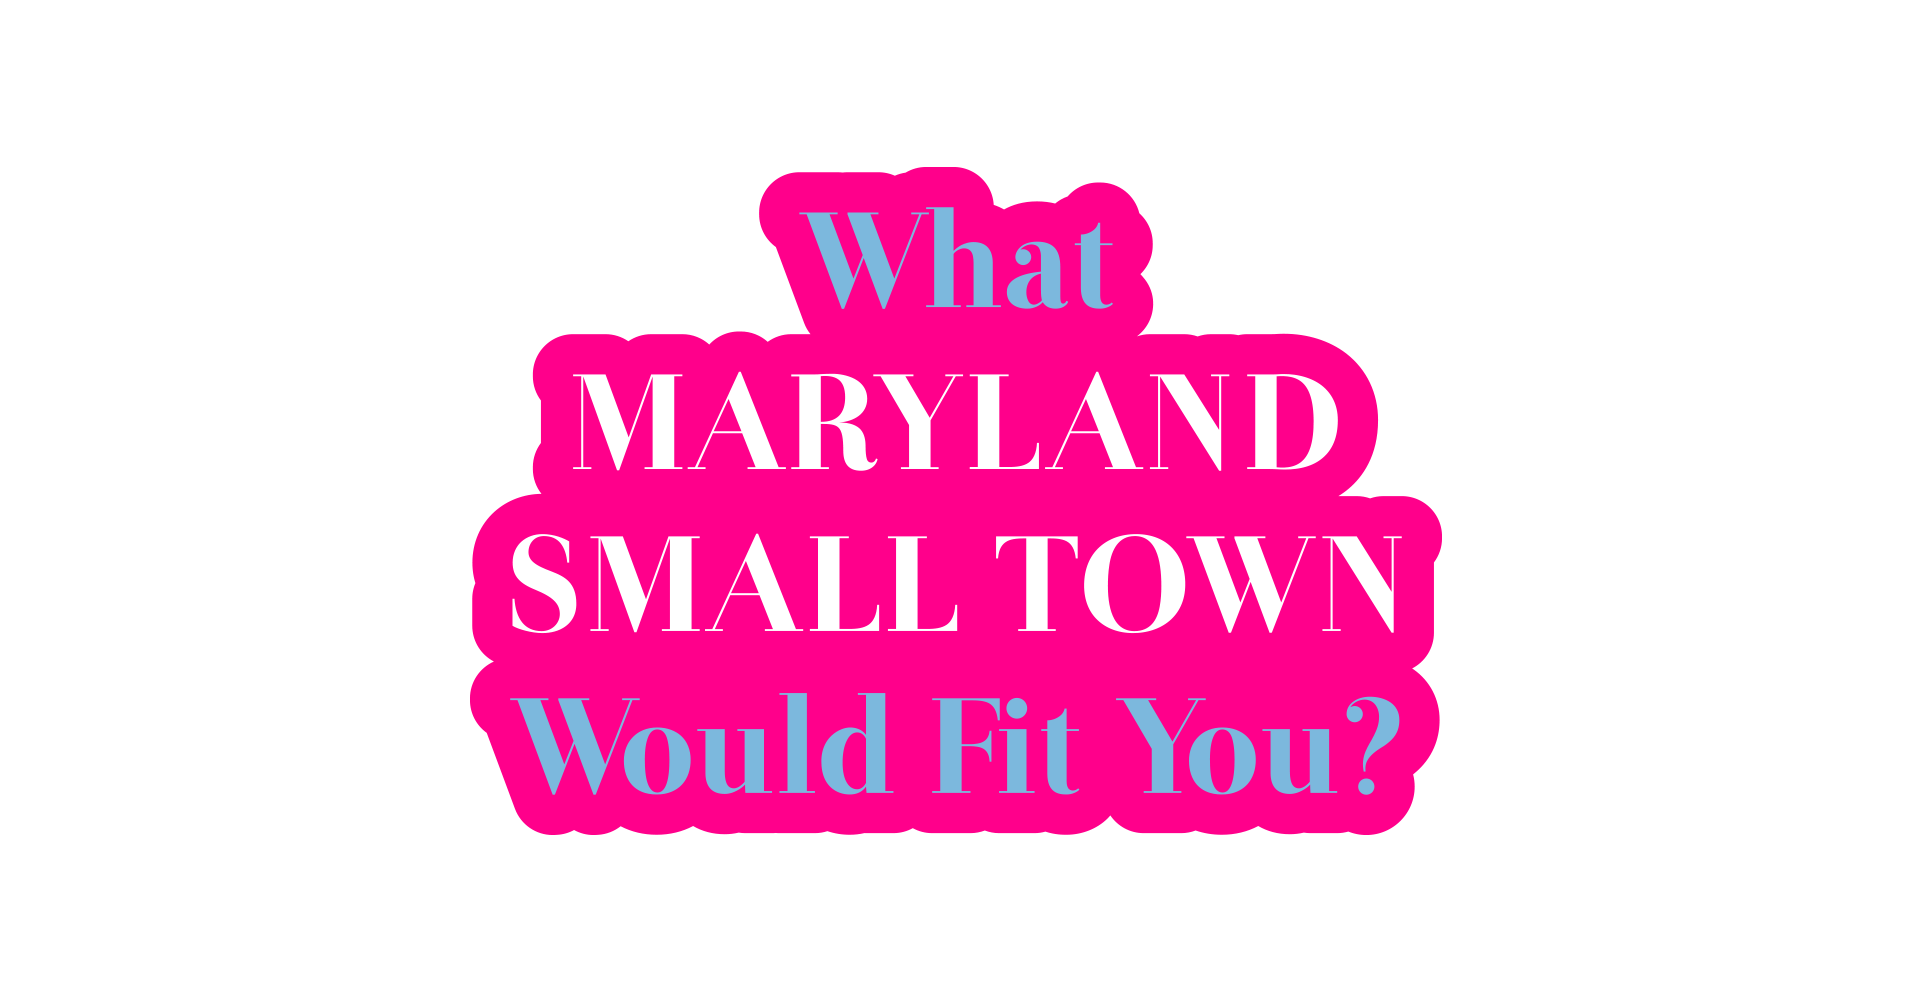 What Maryland Small Town Would Fit You?